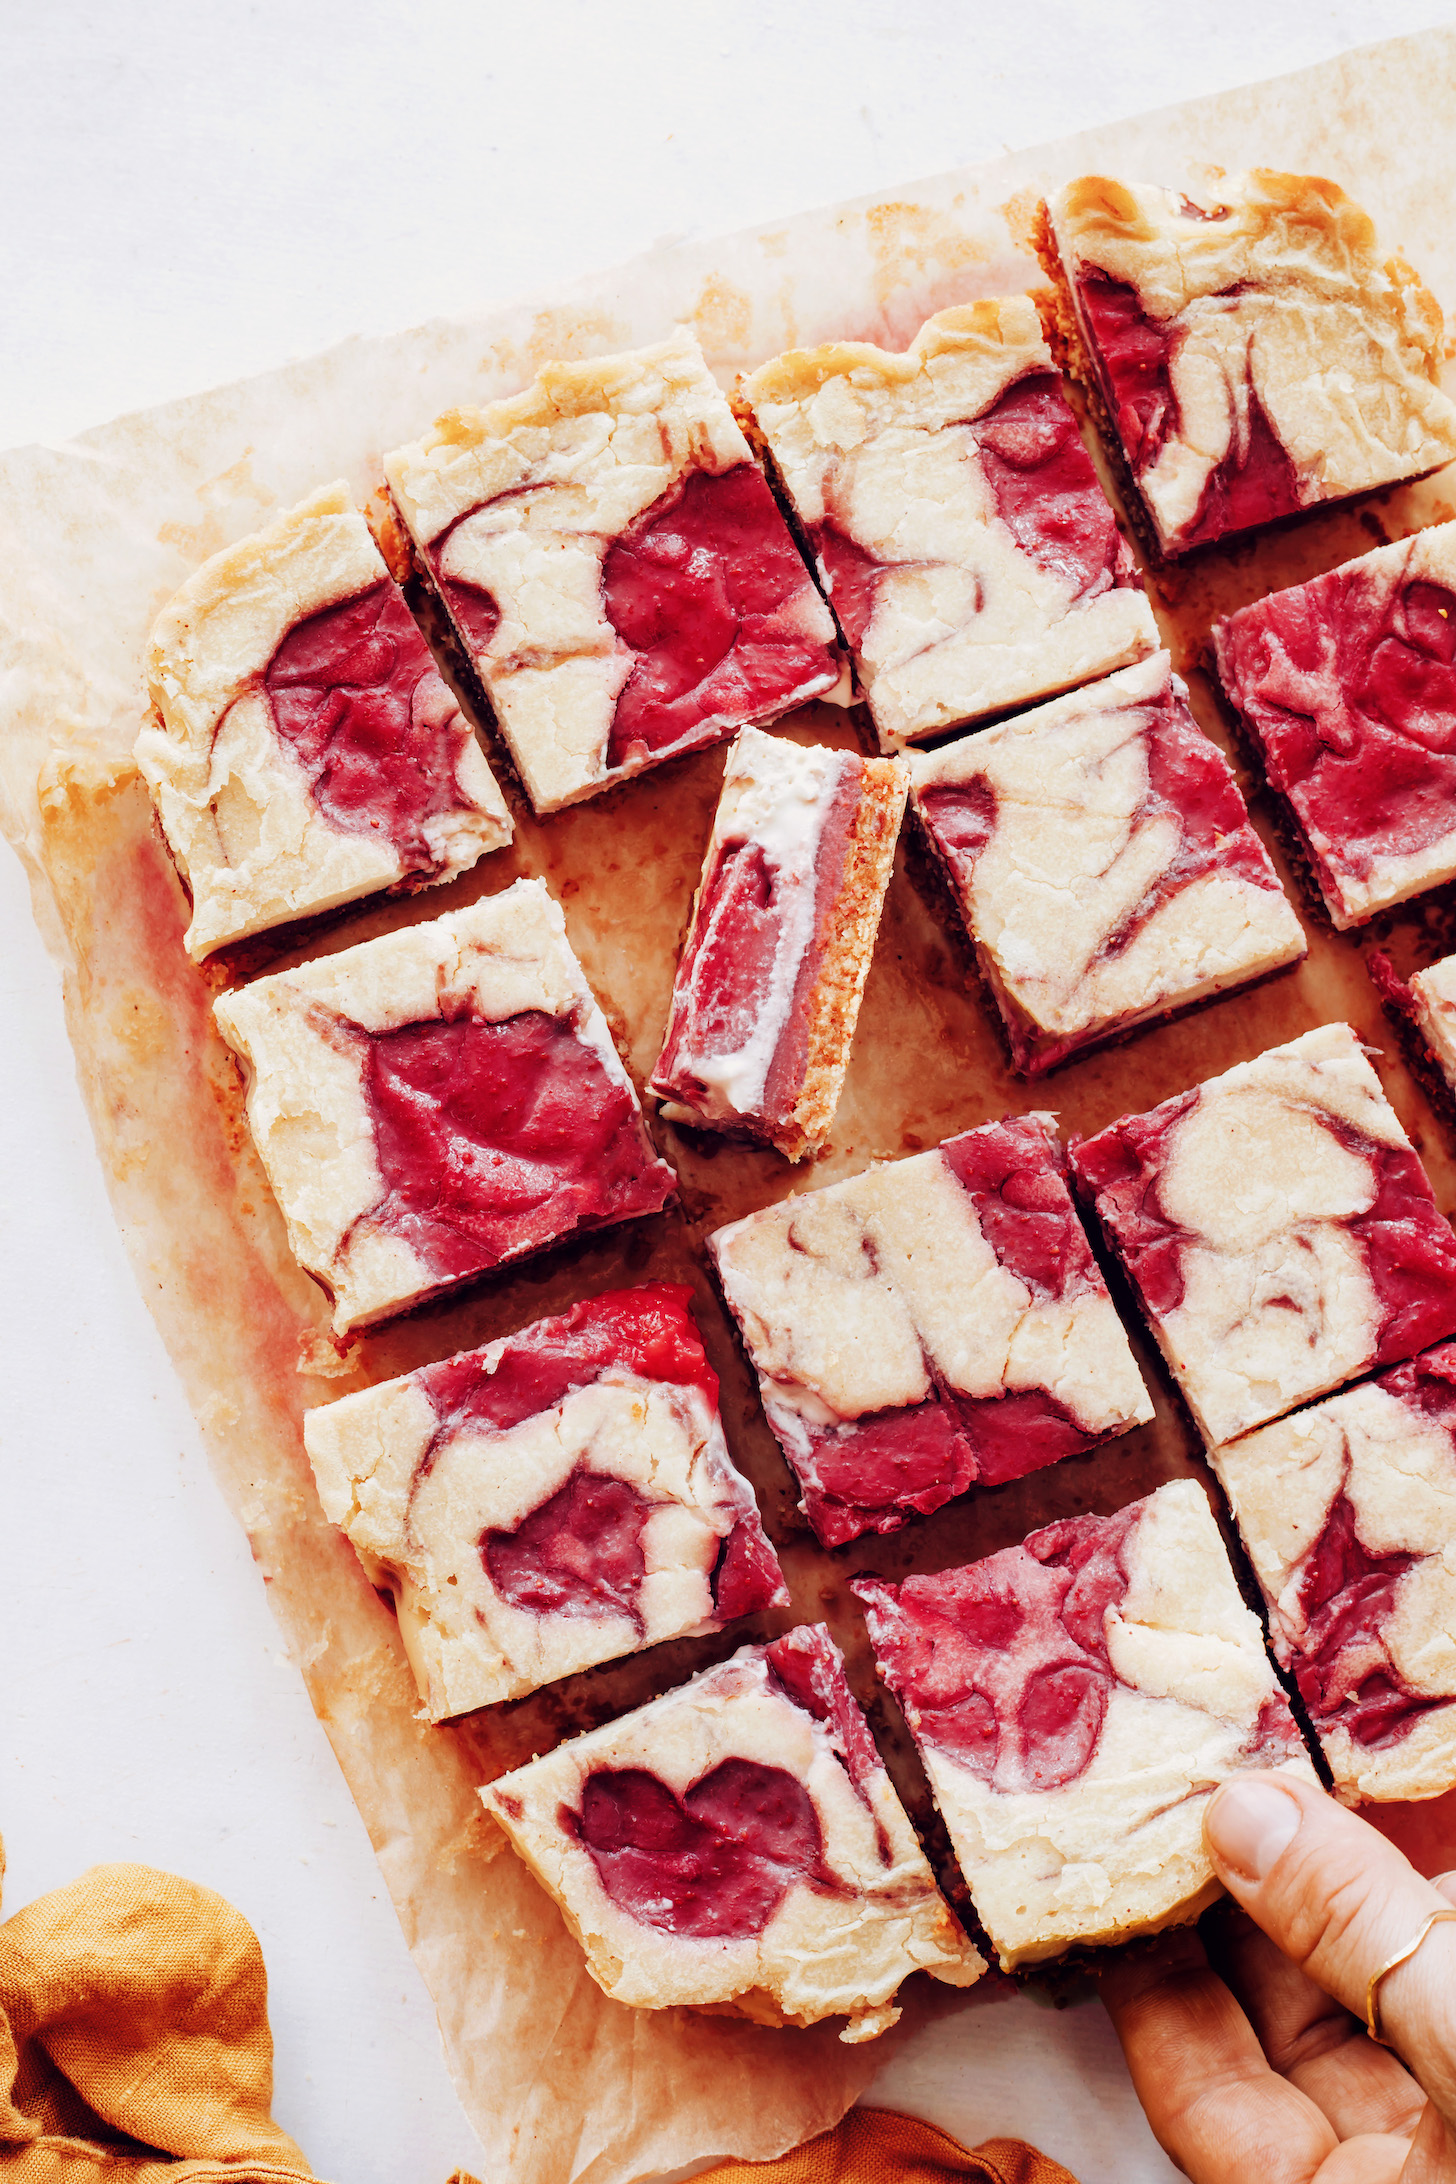 Gluten-free vegan strawberry cheesecake bars on a piece of parchment paper